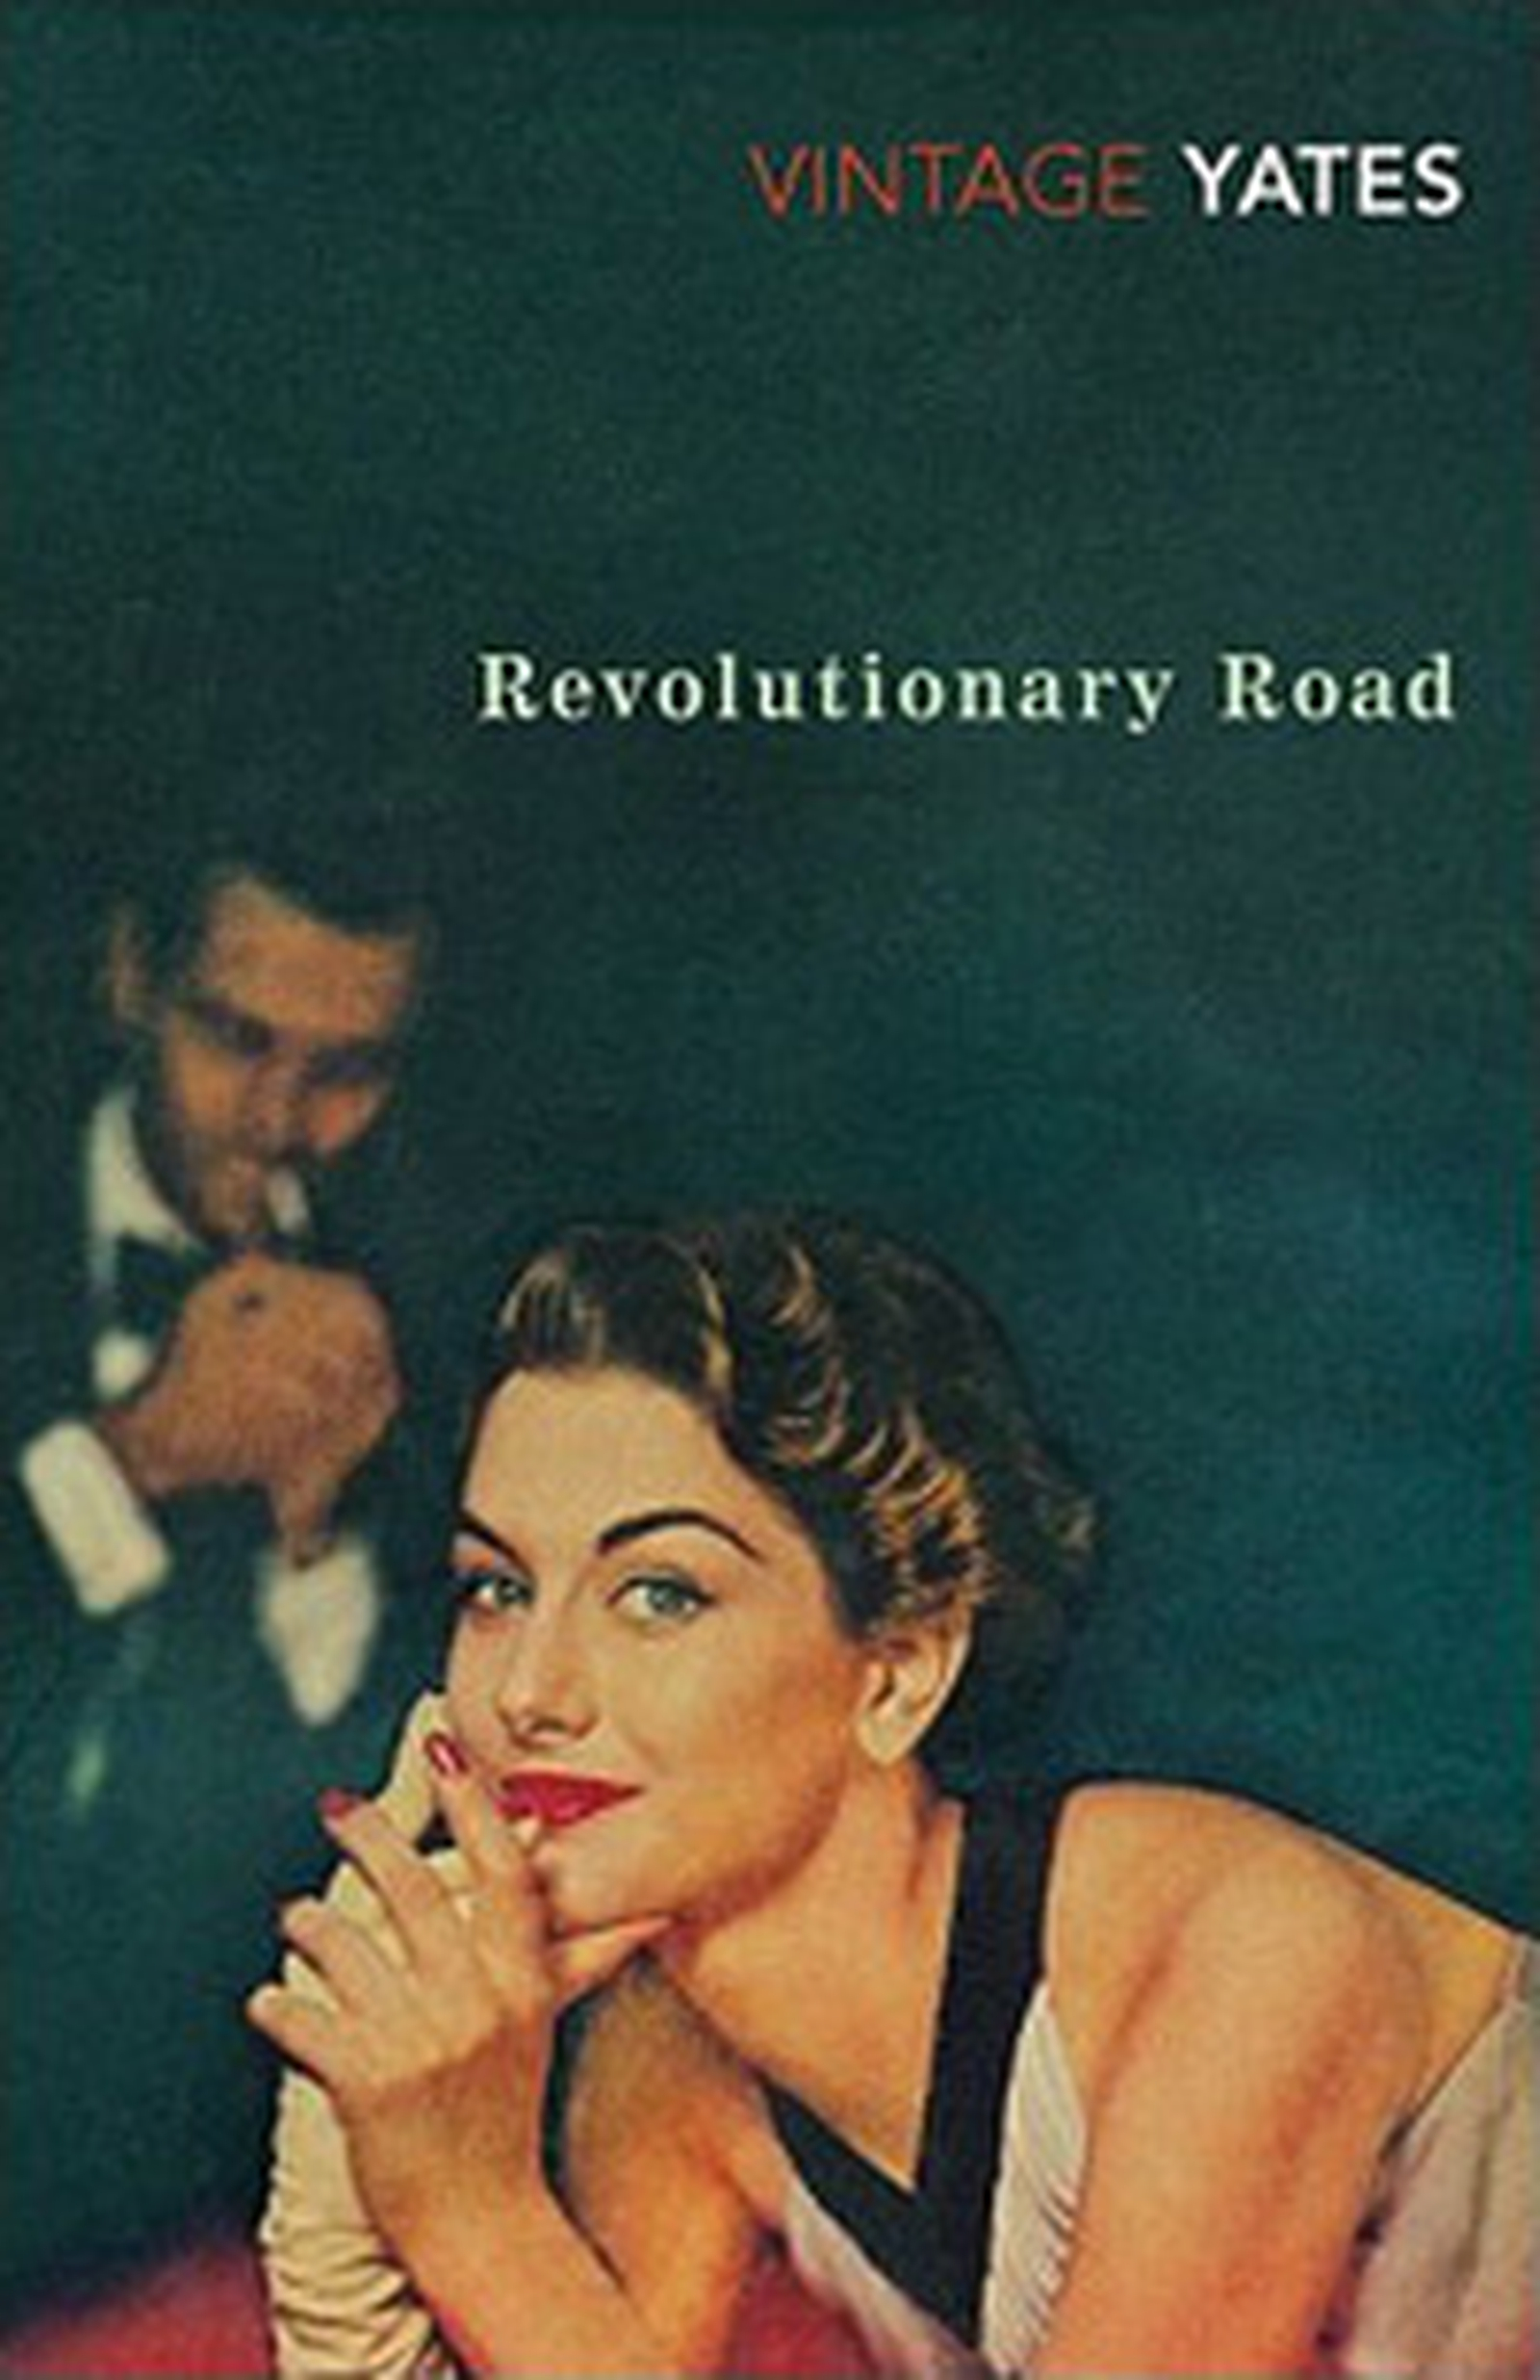 Revolutionary Road by Richard Yates